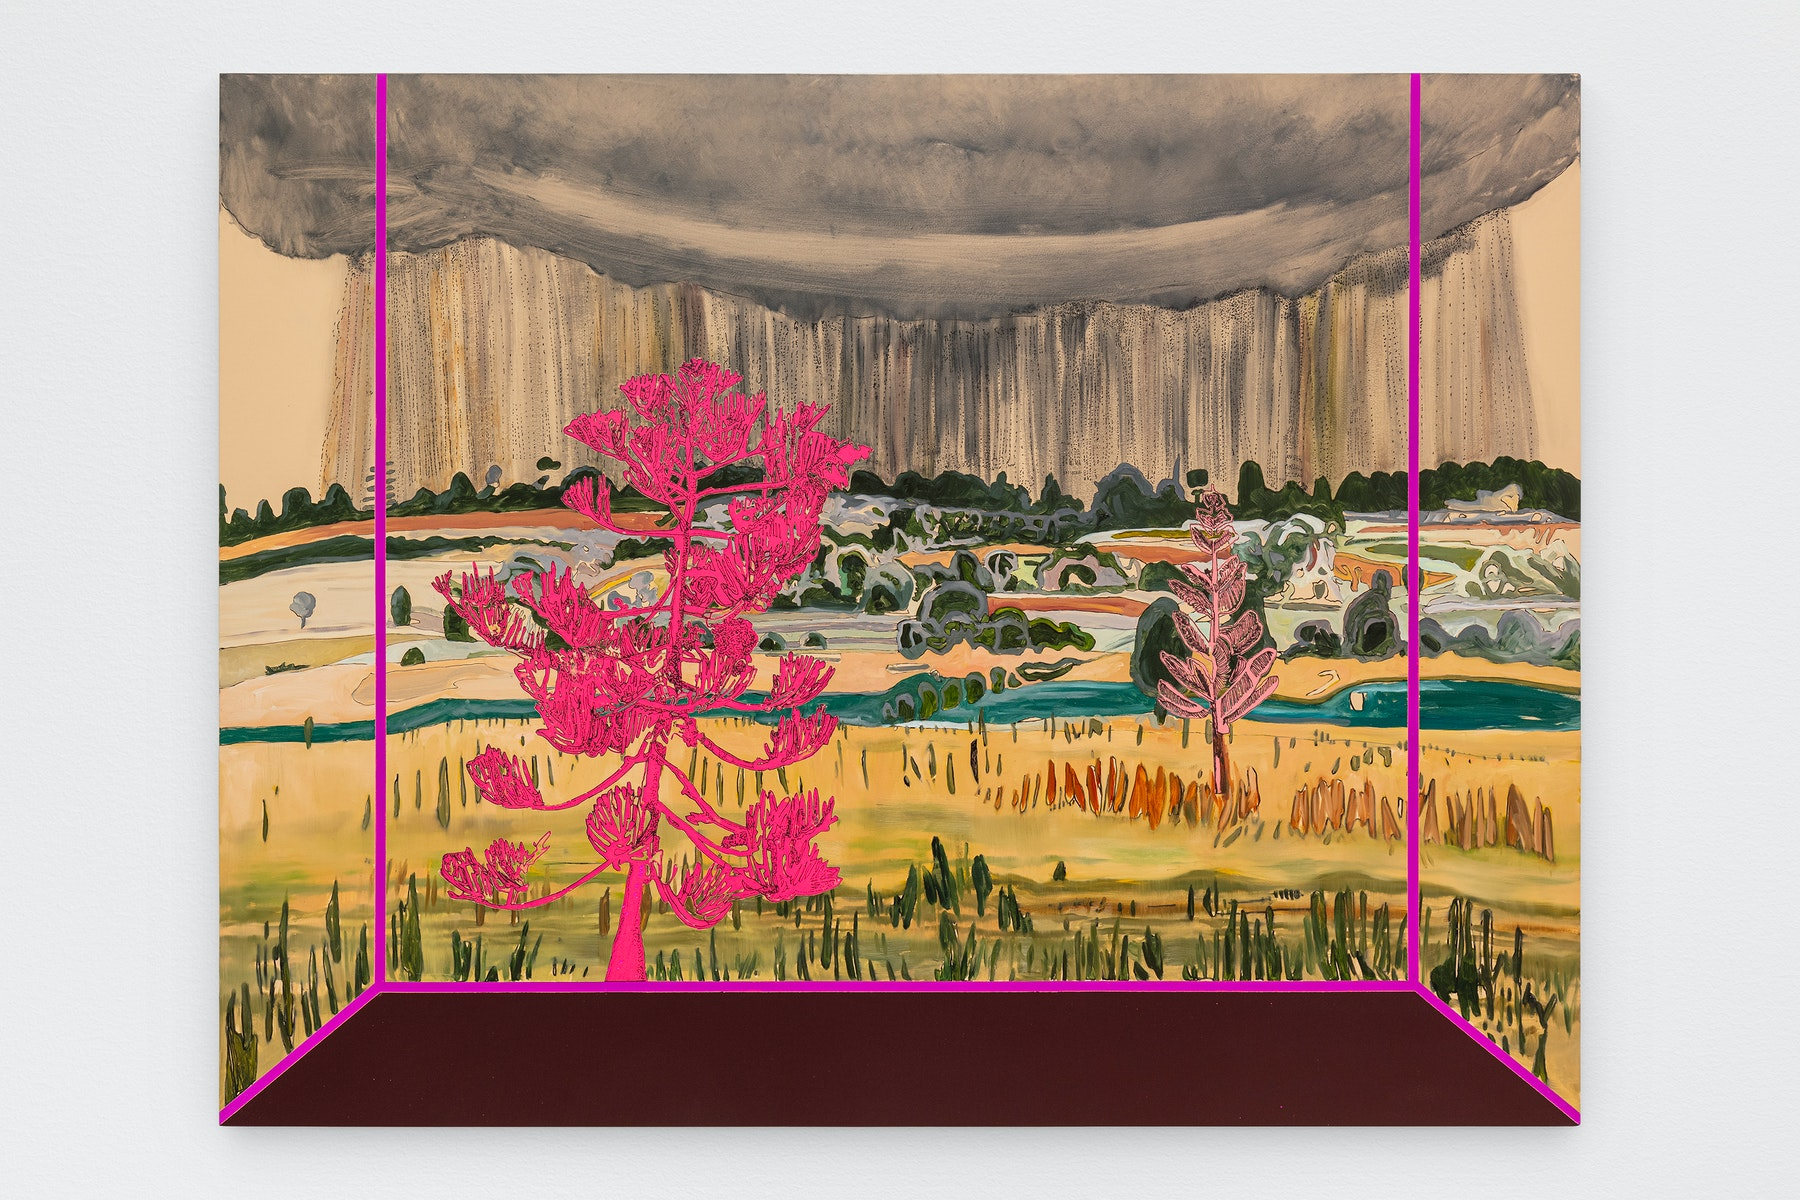 """Whitney Bedford """"Veduta (Burchfield Rain),"""" 2021 Ink and oil on linen on hybrid panel 33 ¹⁄₂"""" x 47"""" x 2"""" [HxWxD] (85.09 x 119.38 x 5.08 cm) Inventory #BED405 Courtesy of the artist and Vielmetter Los Angeles Photo credit: Evan Bedford"""